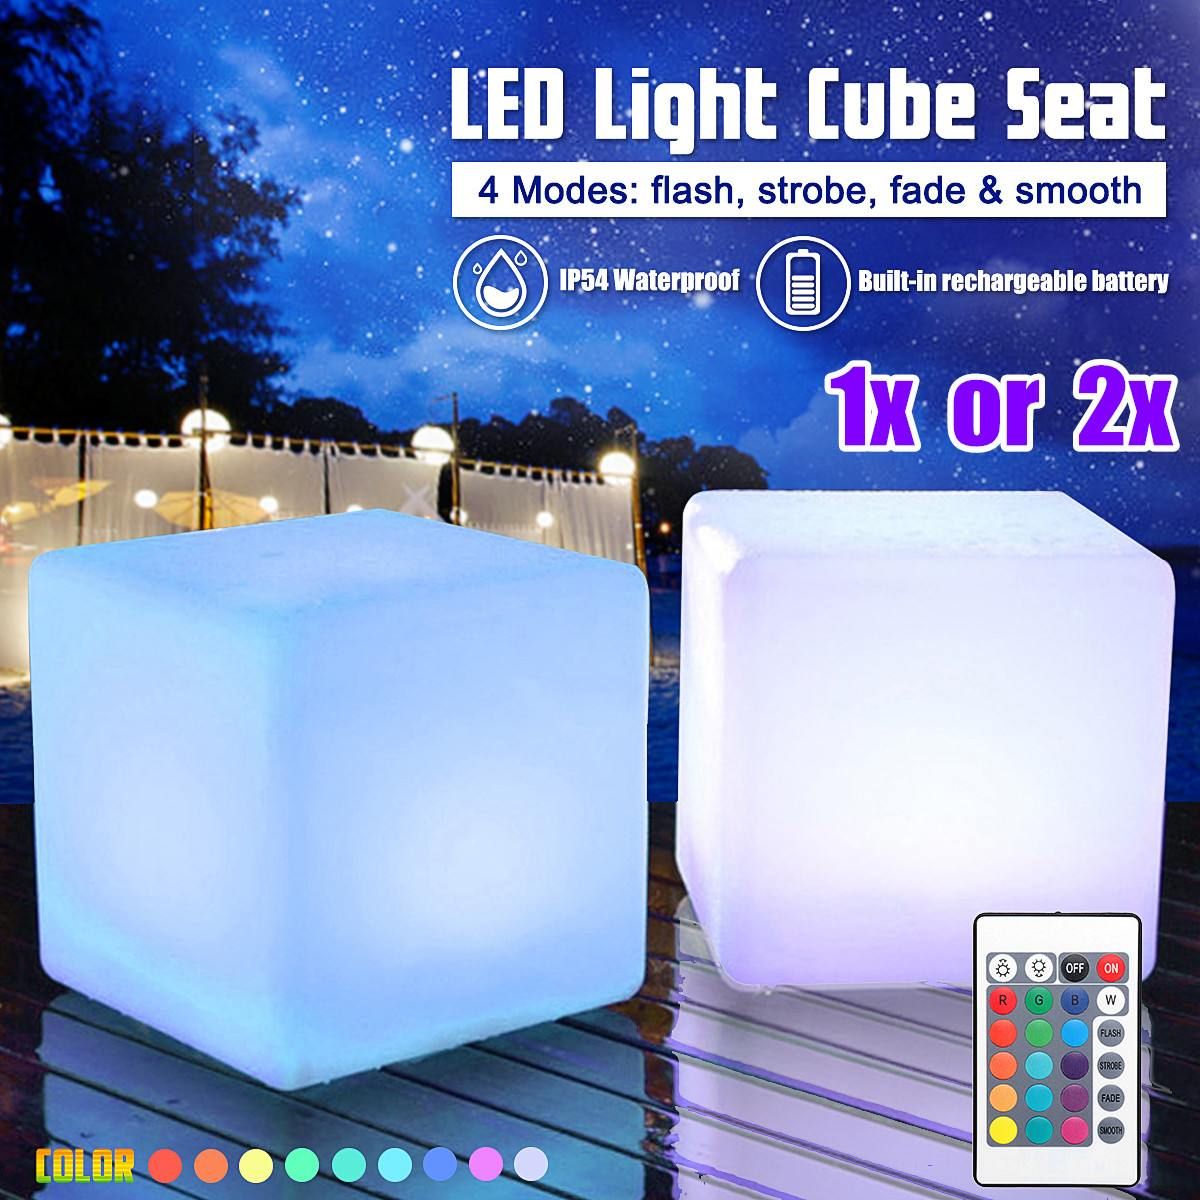 Newest 20cm RGB LED Light Cube Seat Chair Waterproof Rechargeable LED Lighting + Remote Control for Bar Home Decor High Quality